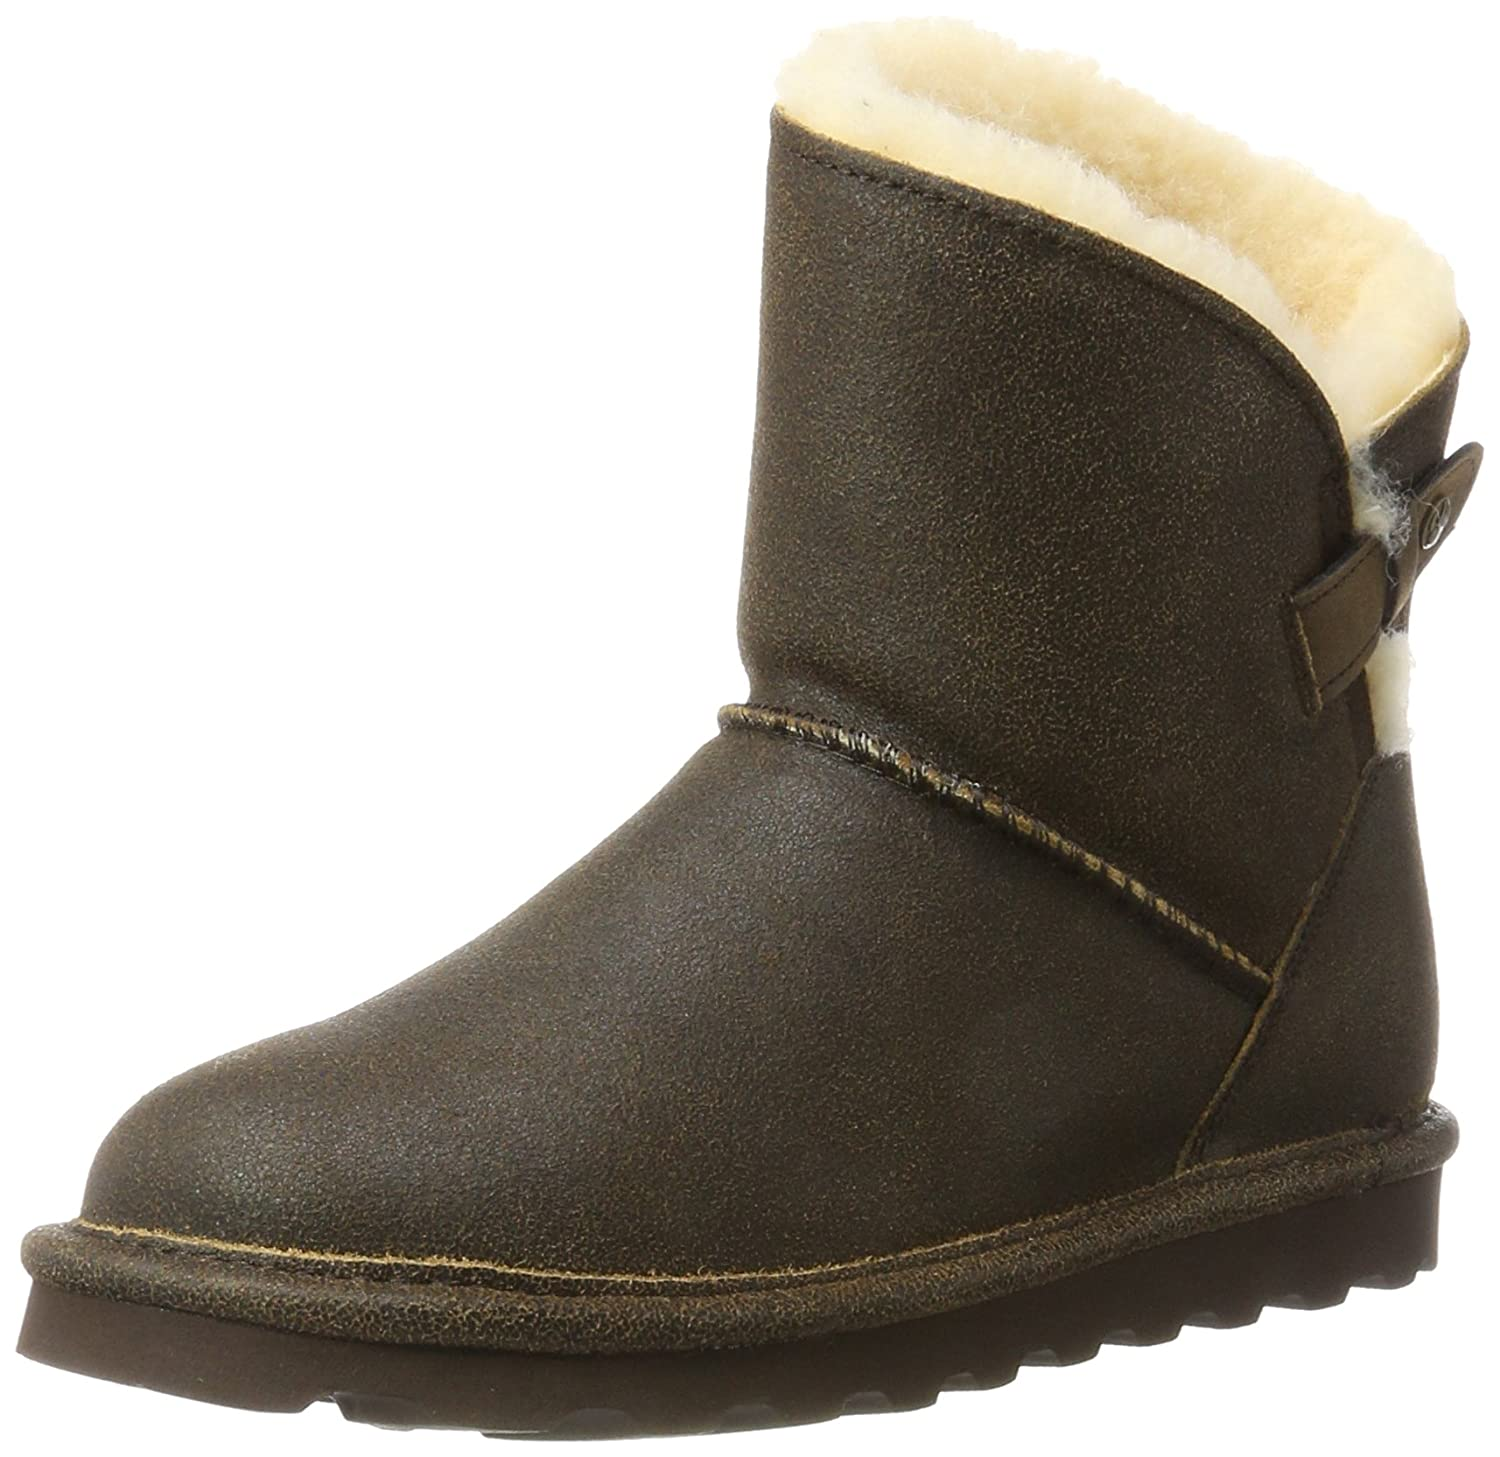 BEARPAW Women's Margaery Fashion Boot B06XRHGYSM 8 B(M) US|Chestnut Distressed